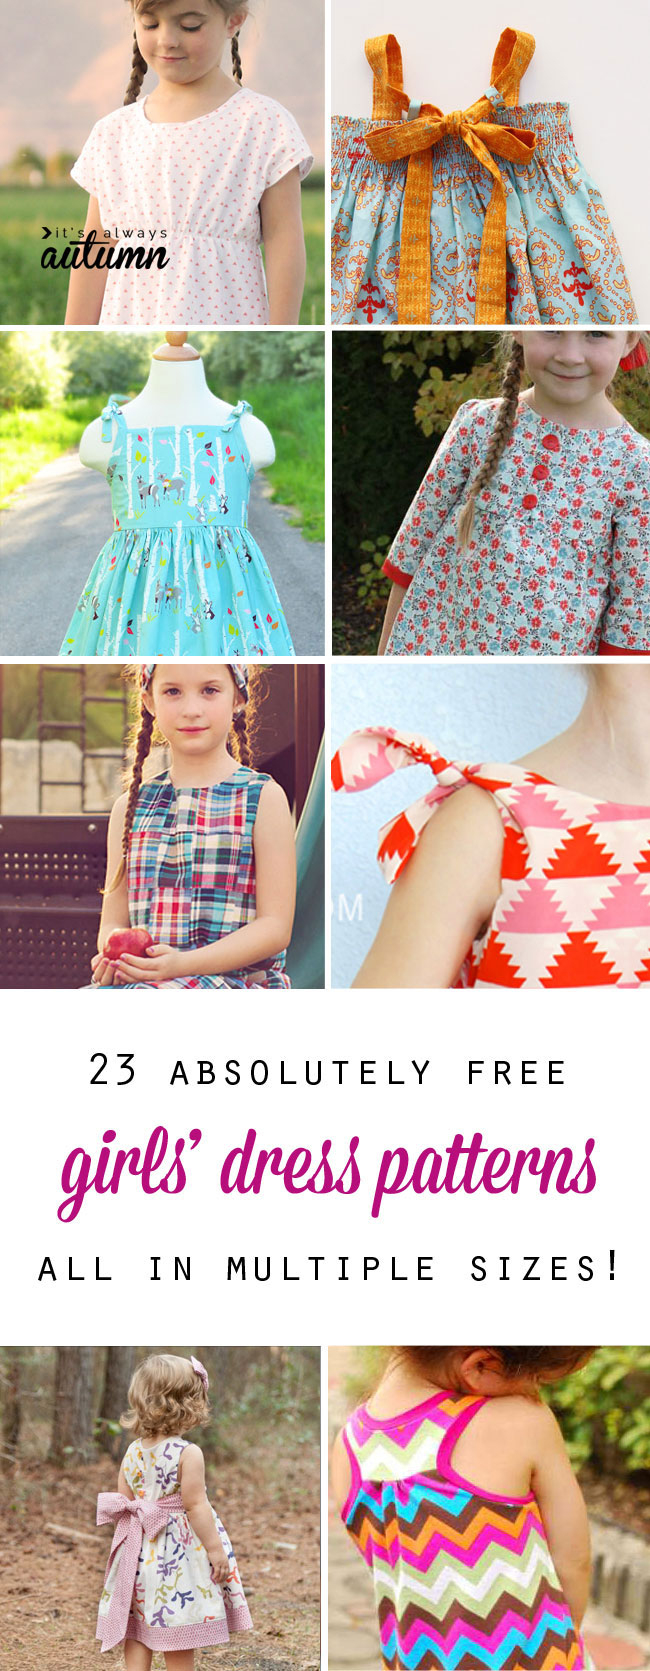 Free Girls' Dress Patterns & Charity Sewing - It's Always Autumn - Free Printable Sewing Patterns For Kids